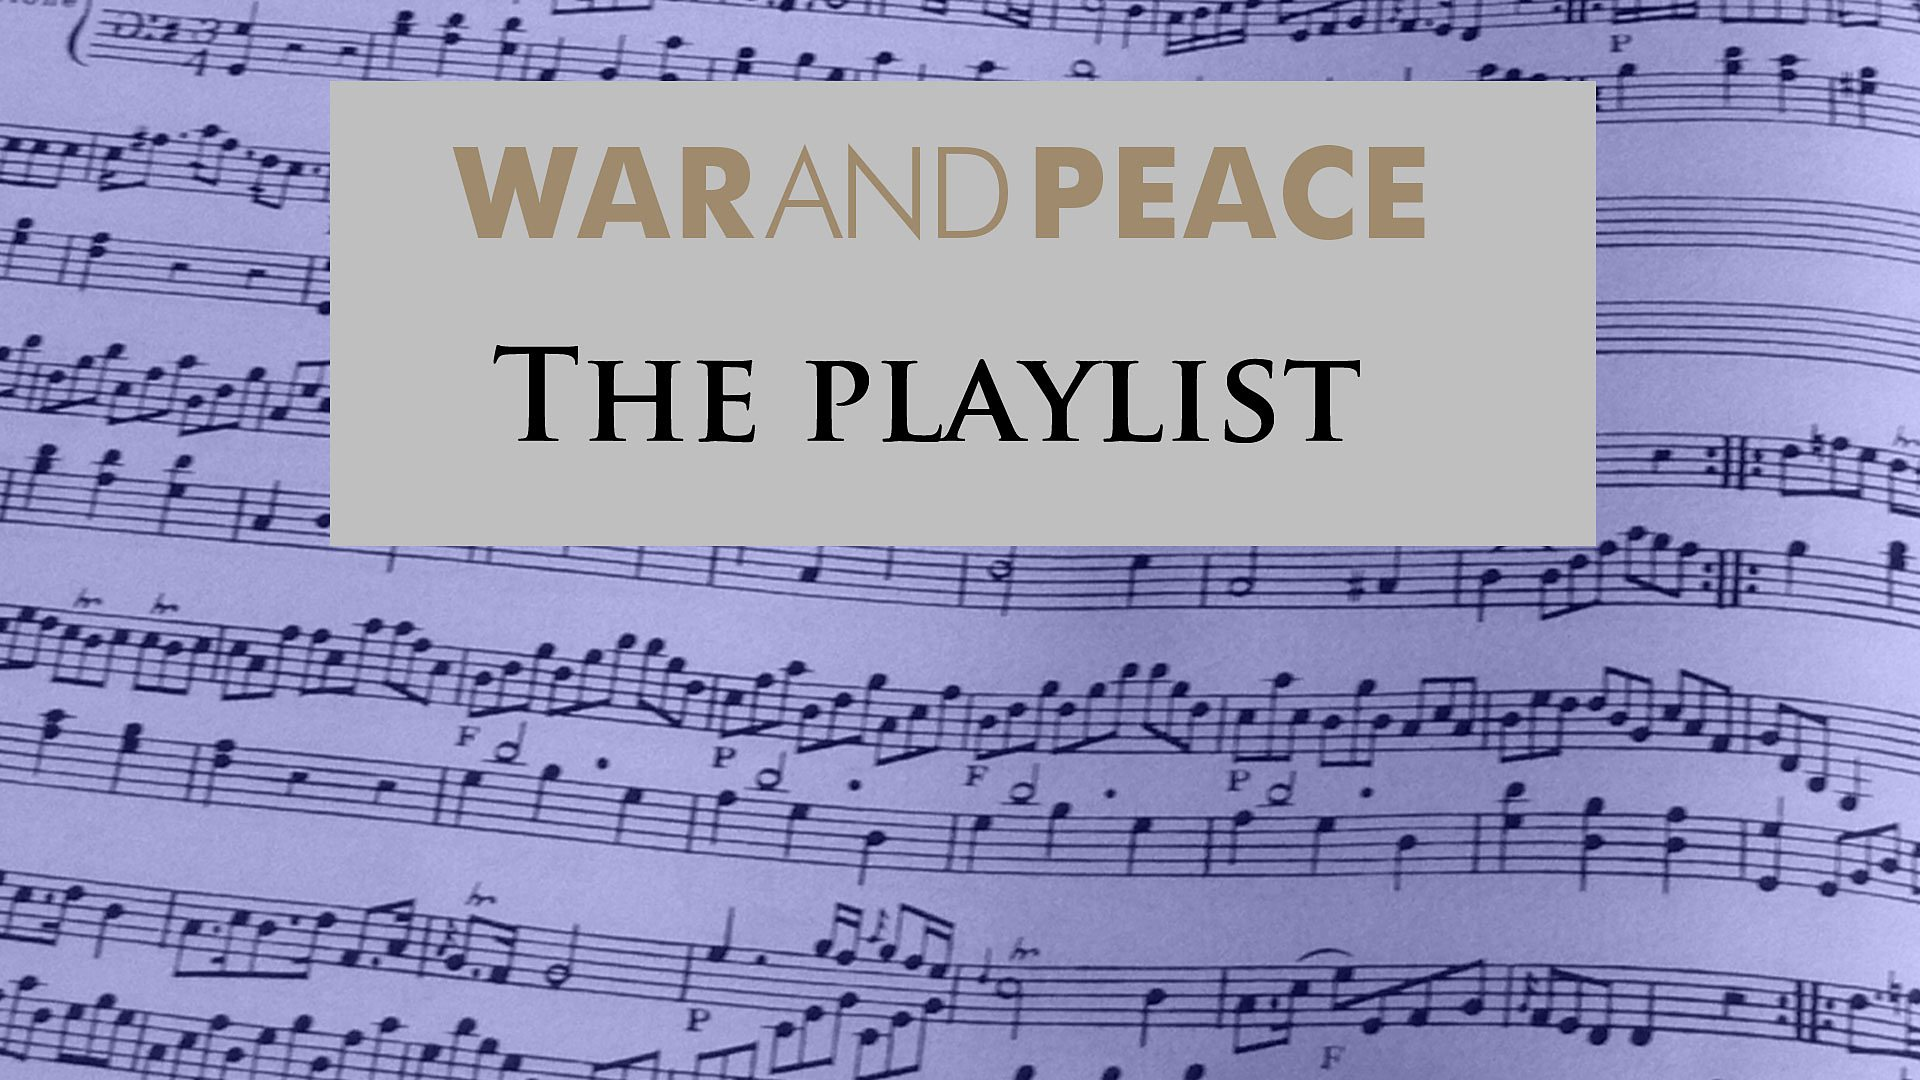 BBC Radio 4 - War and Peace - The War and Peace Playlist